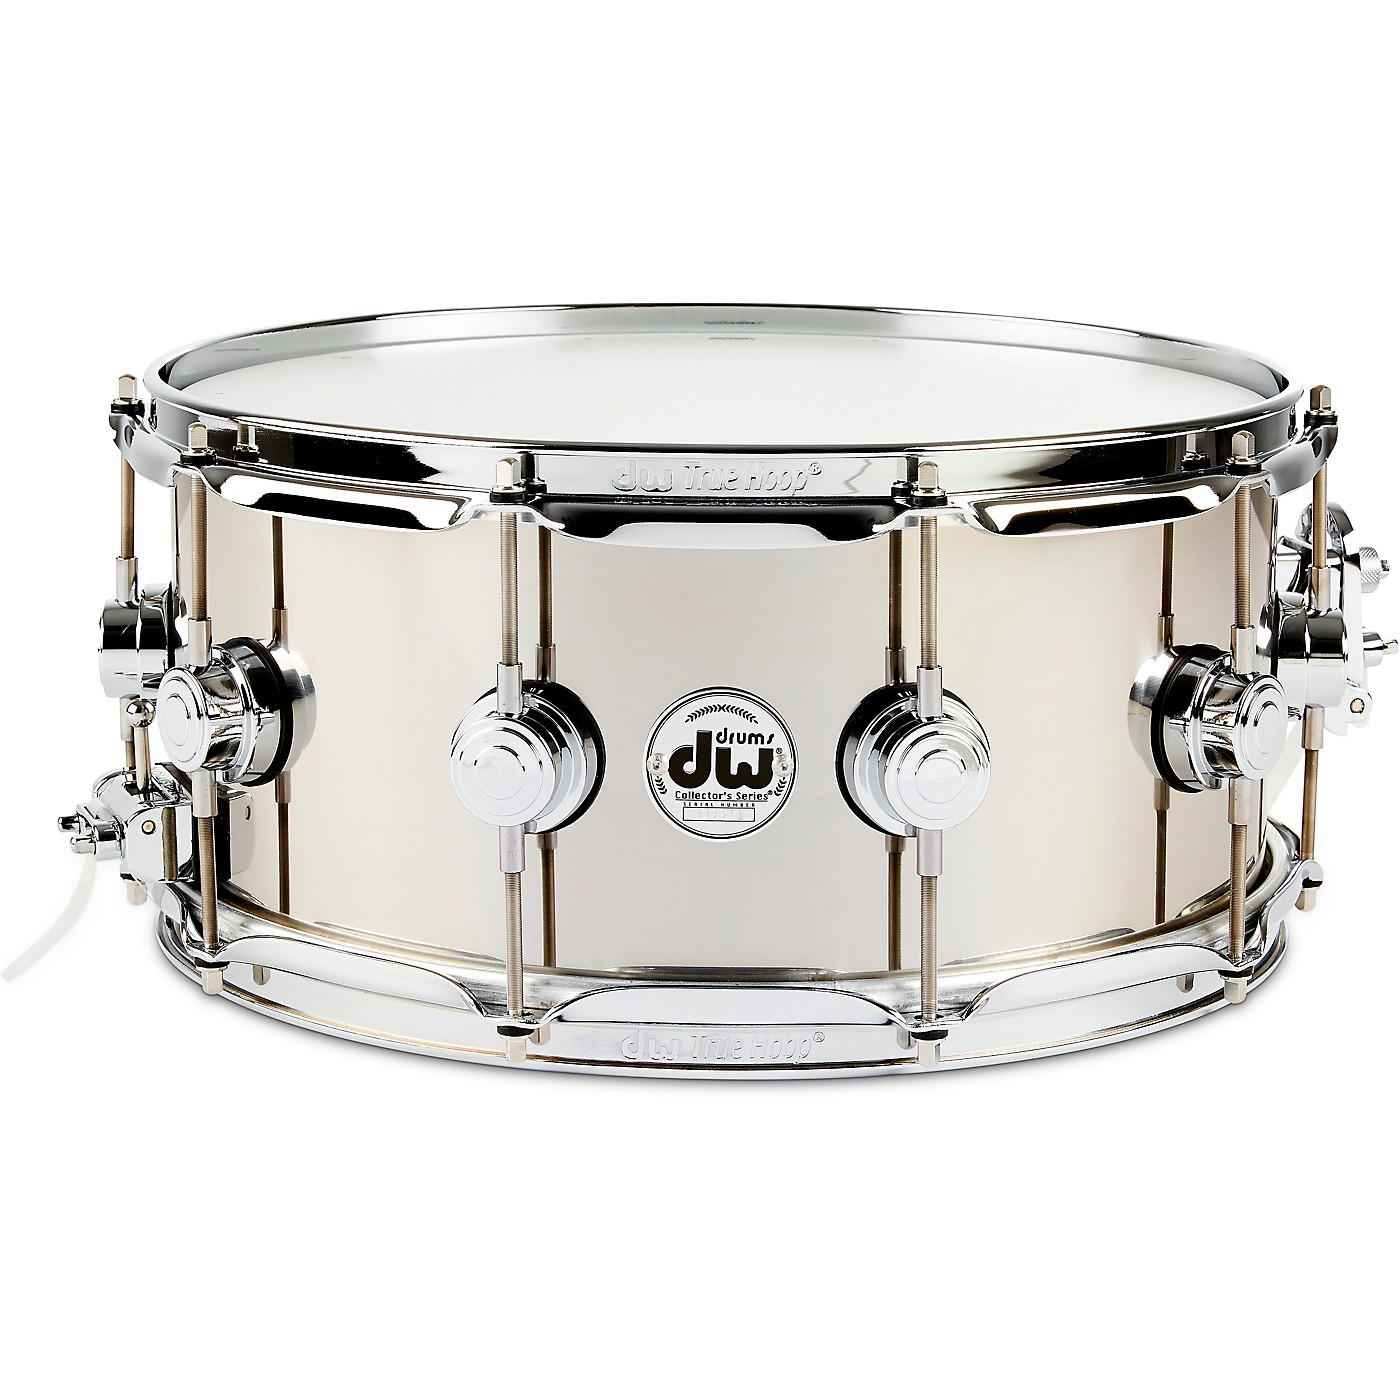 DW Collector's Series Stainless Steel Snare Drum with Chrome Hardware thumbnail